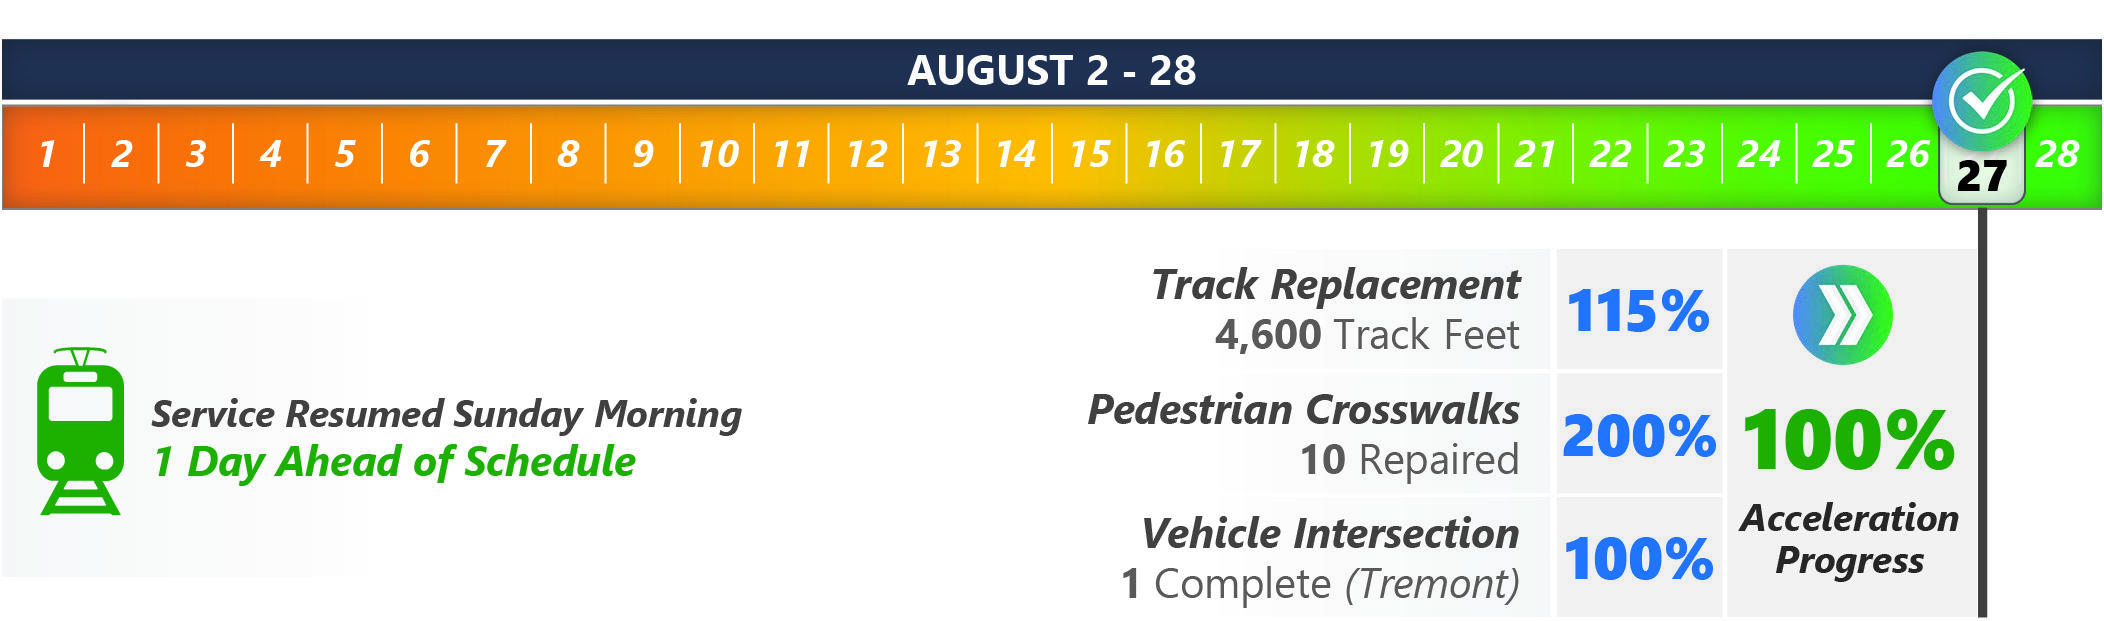 Green Line E Branch milestone calendar during the month of August.